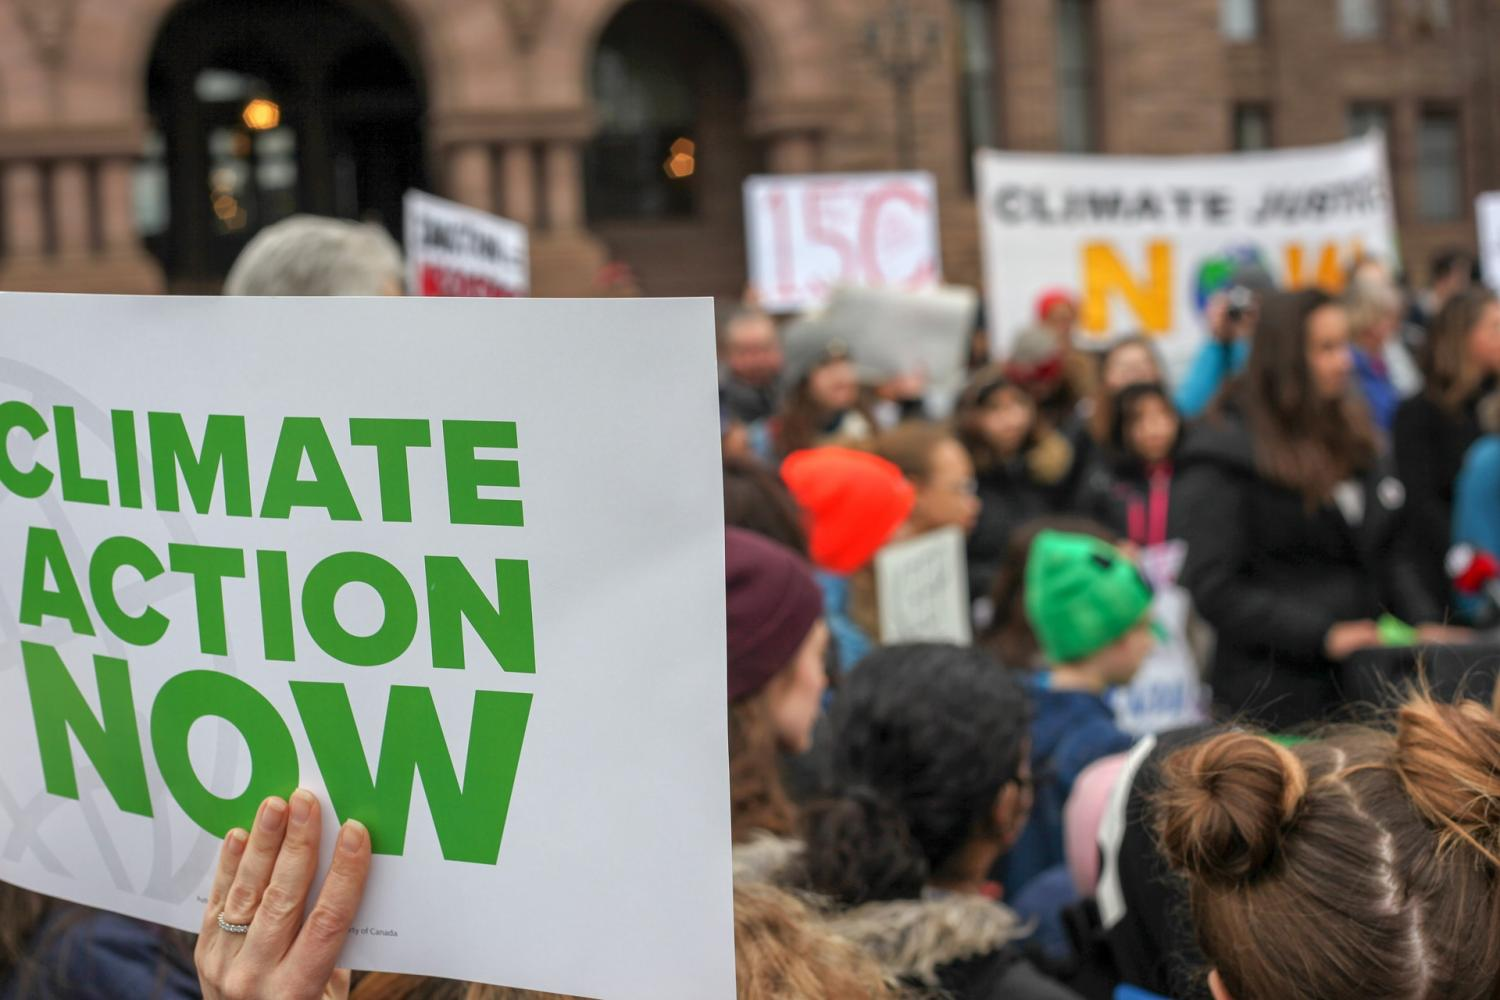 Amazon global climate strike brands taking stands activism